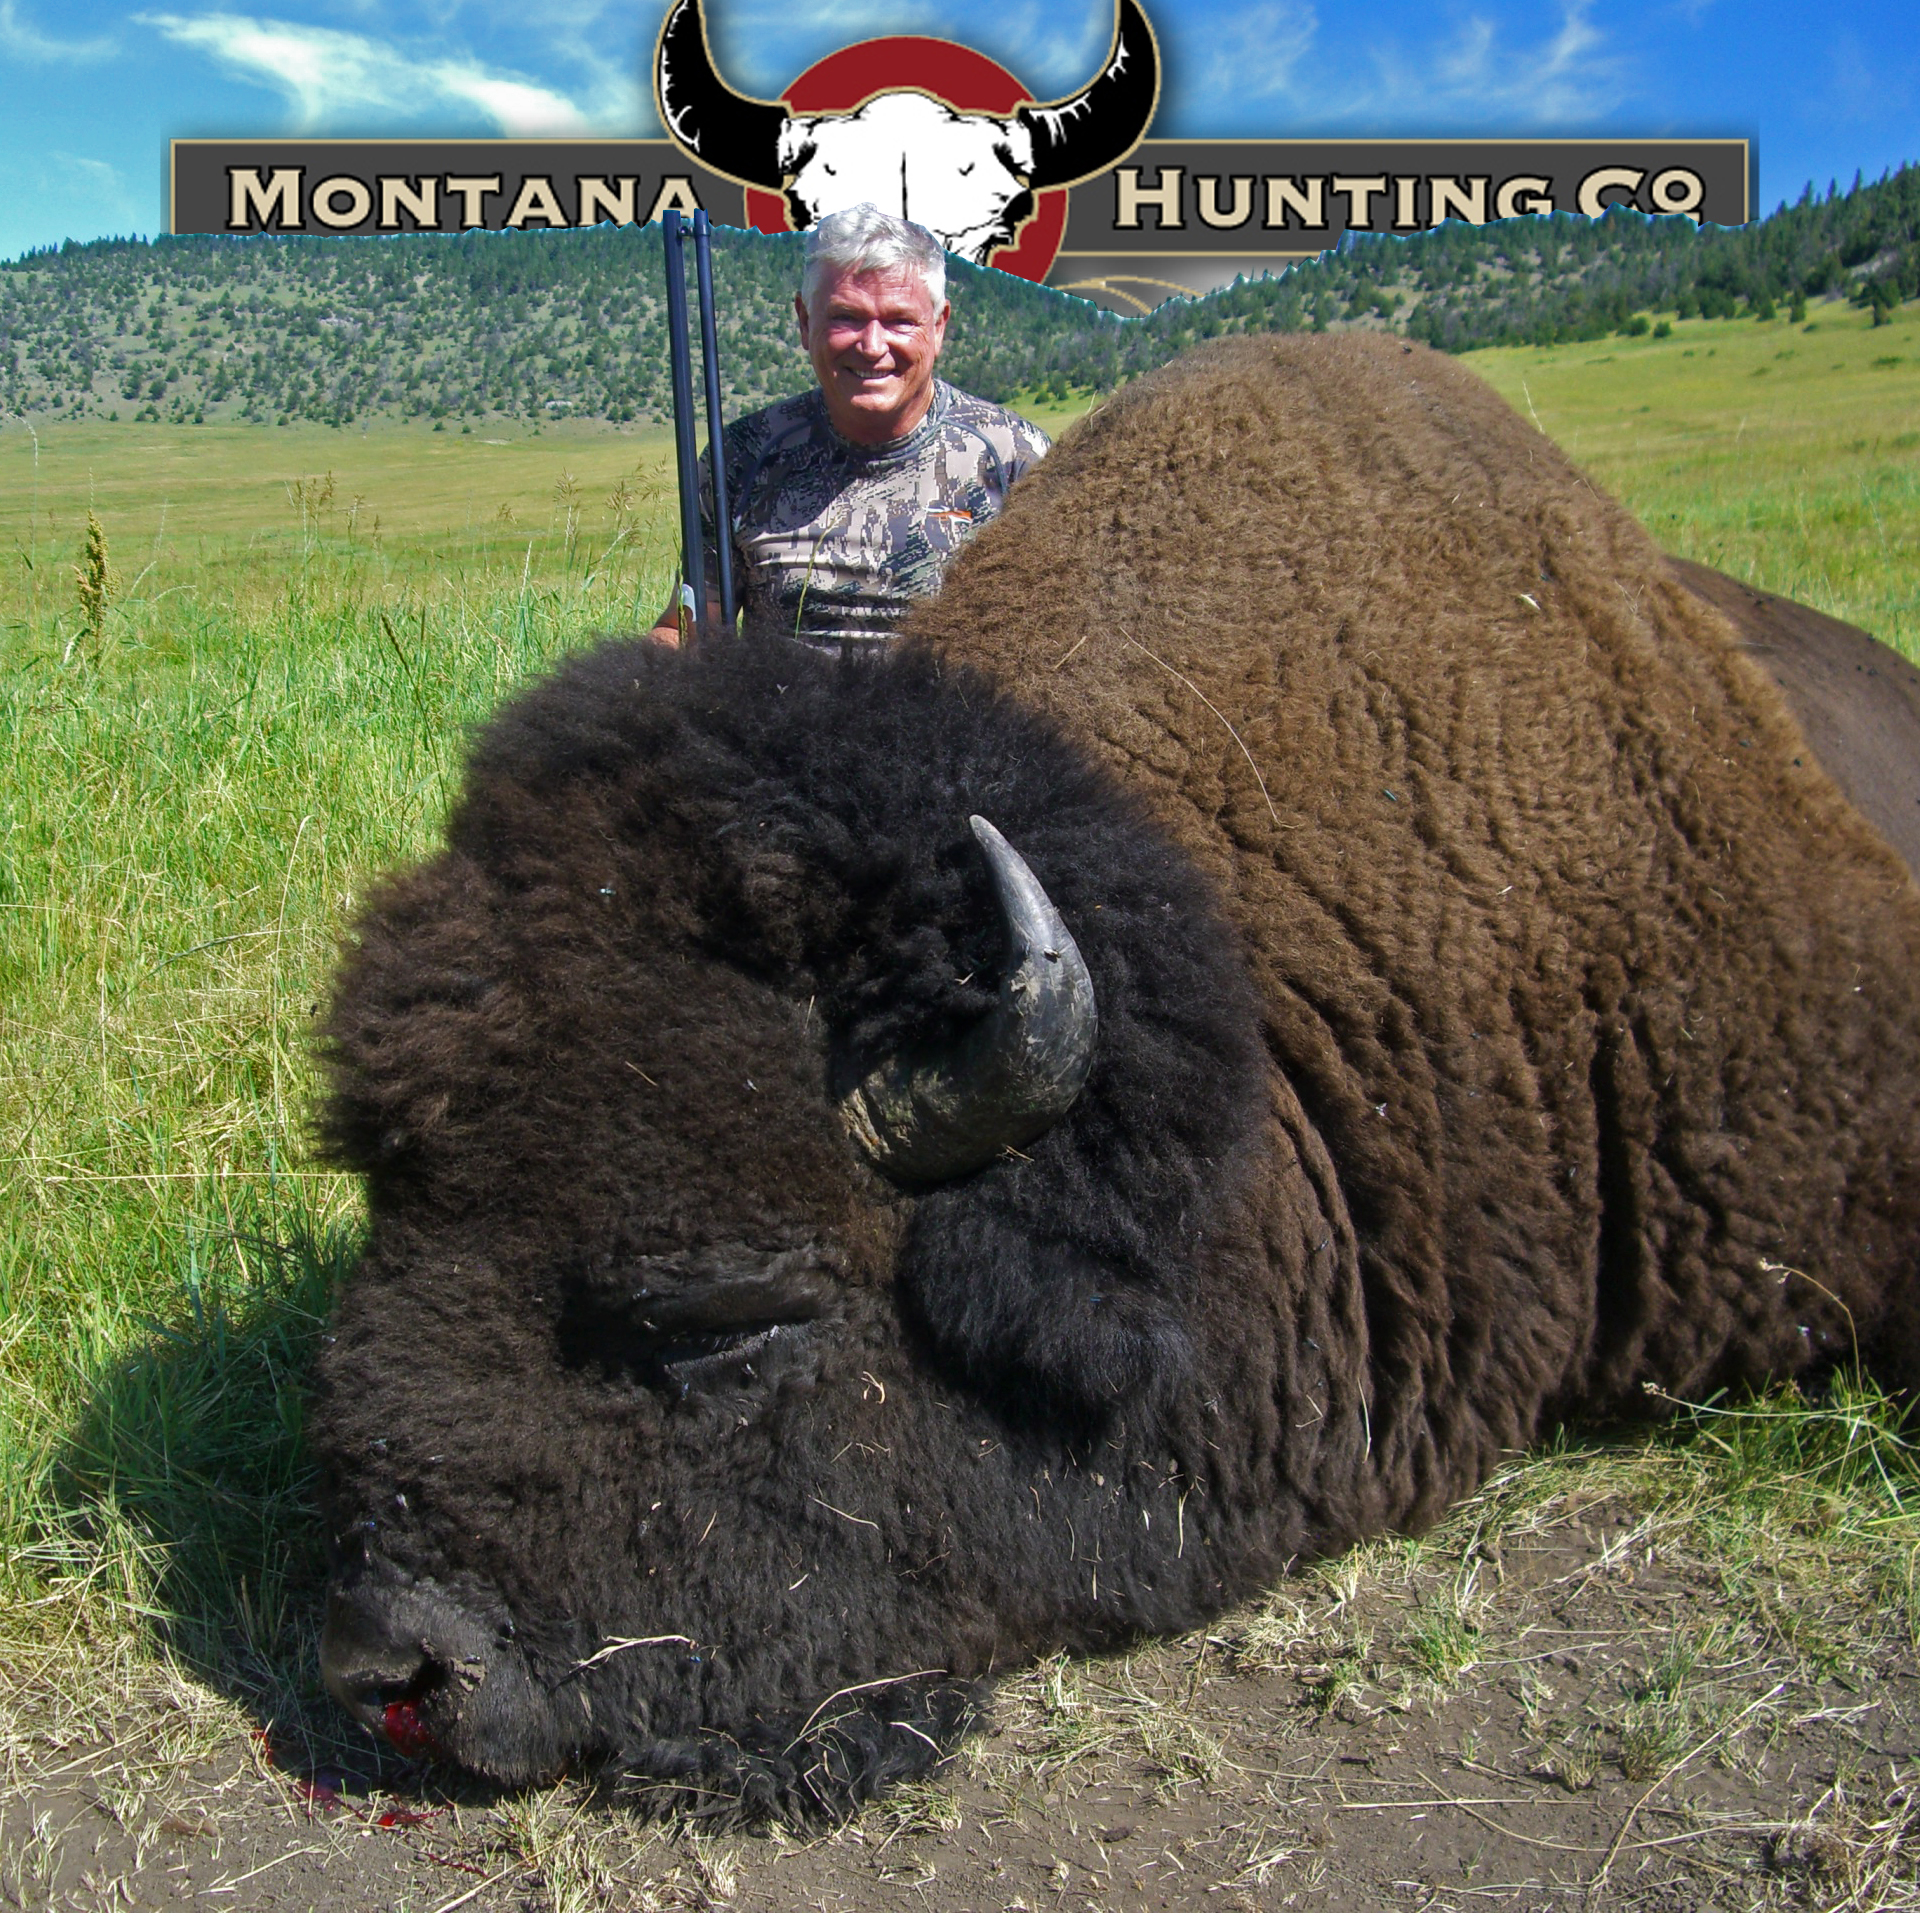 Hunter and his Trophy Bison